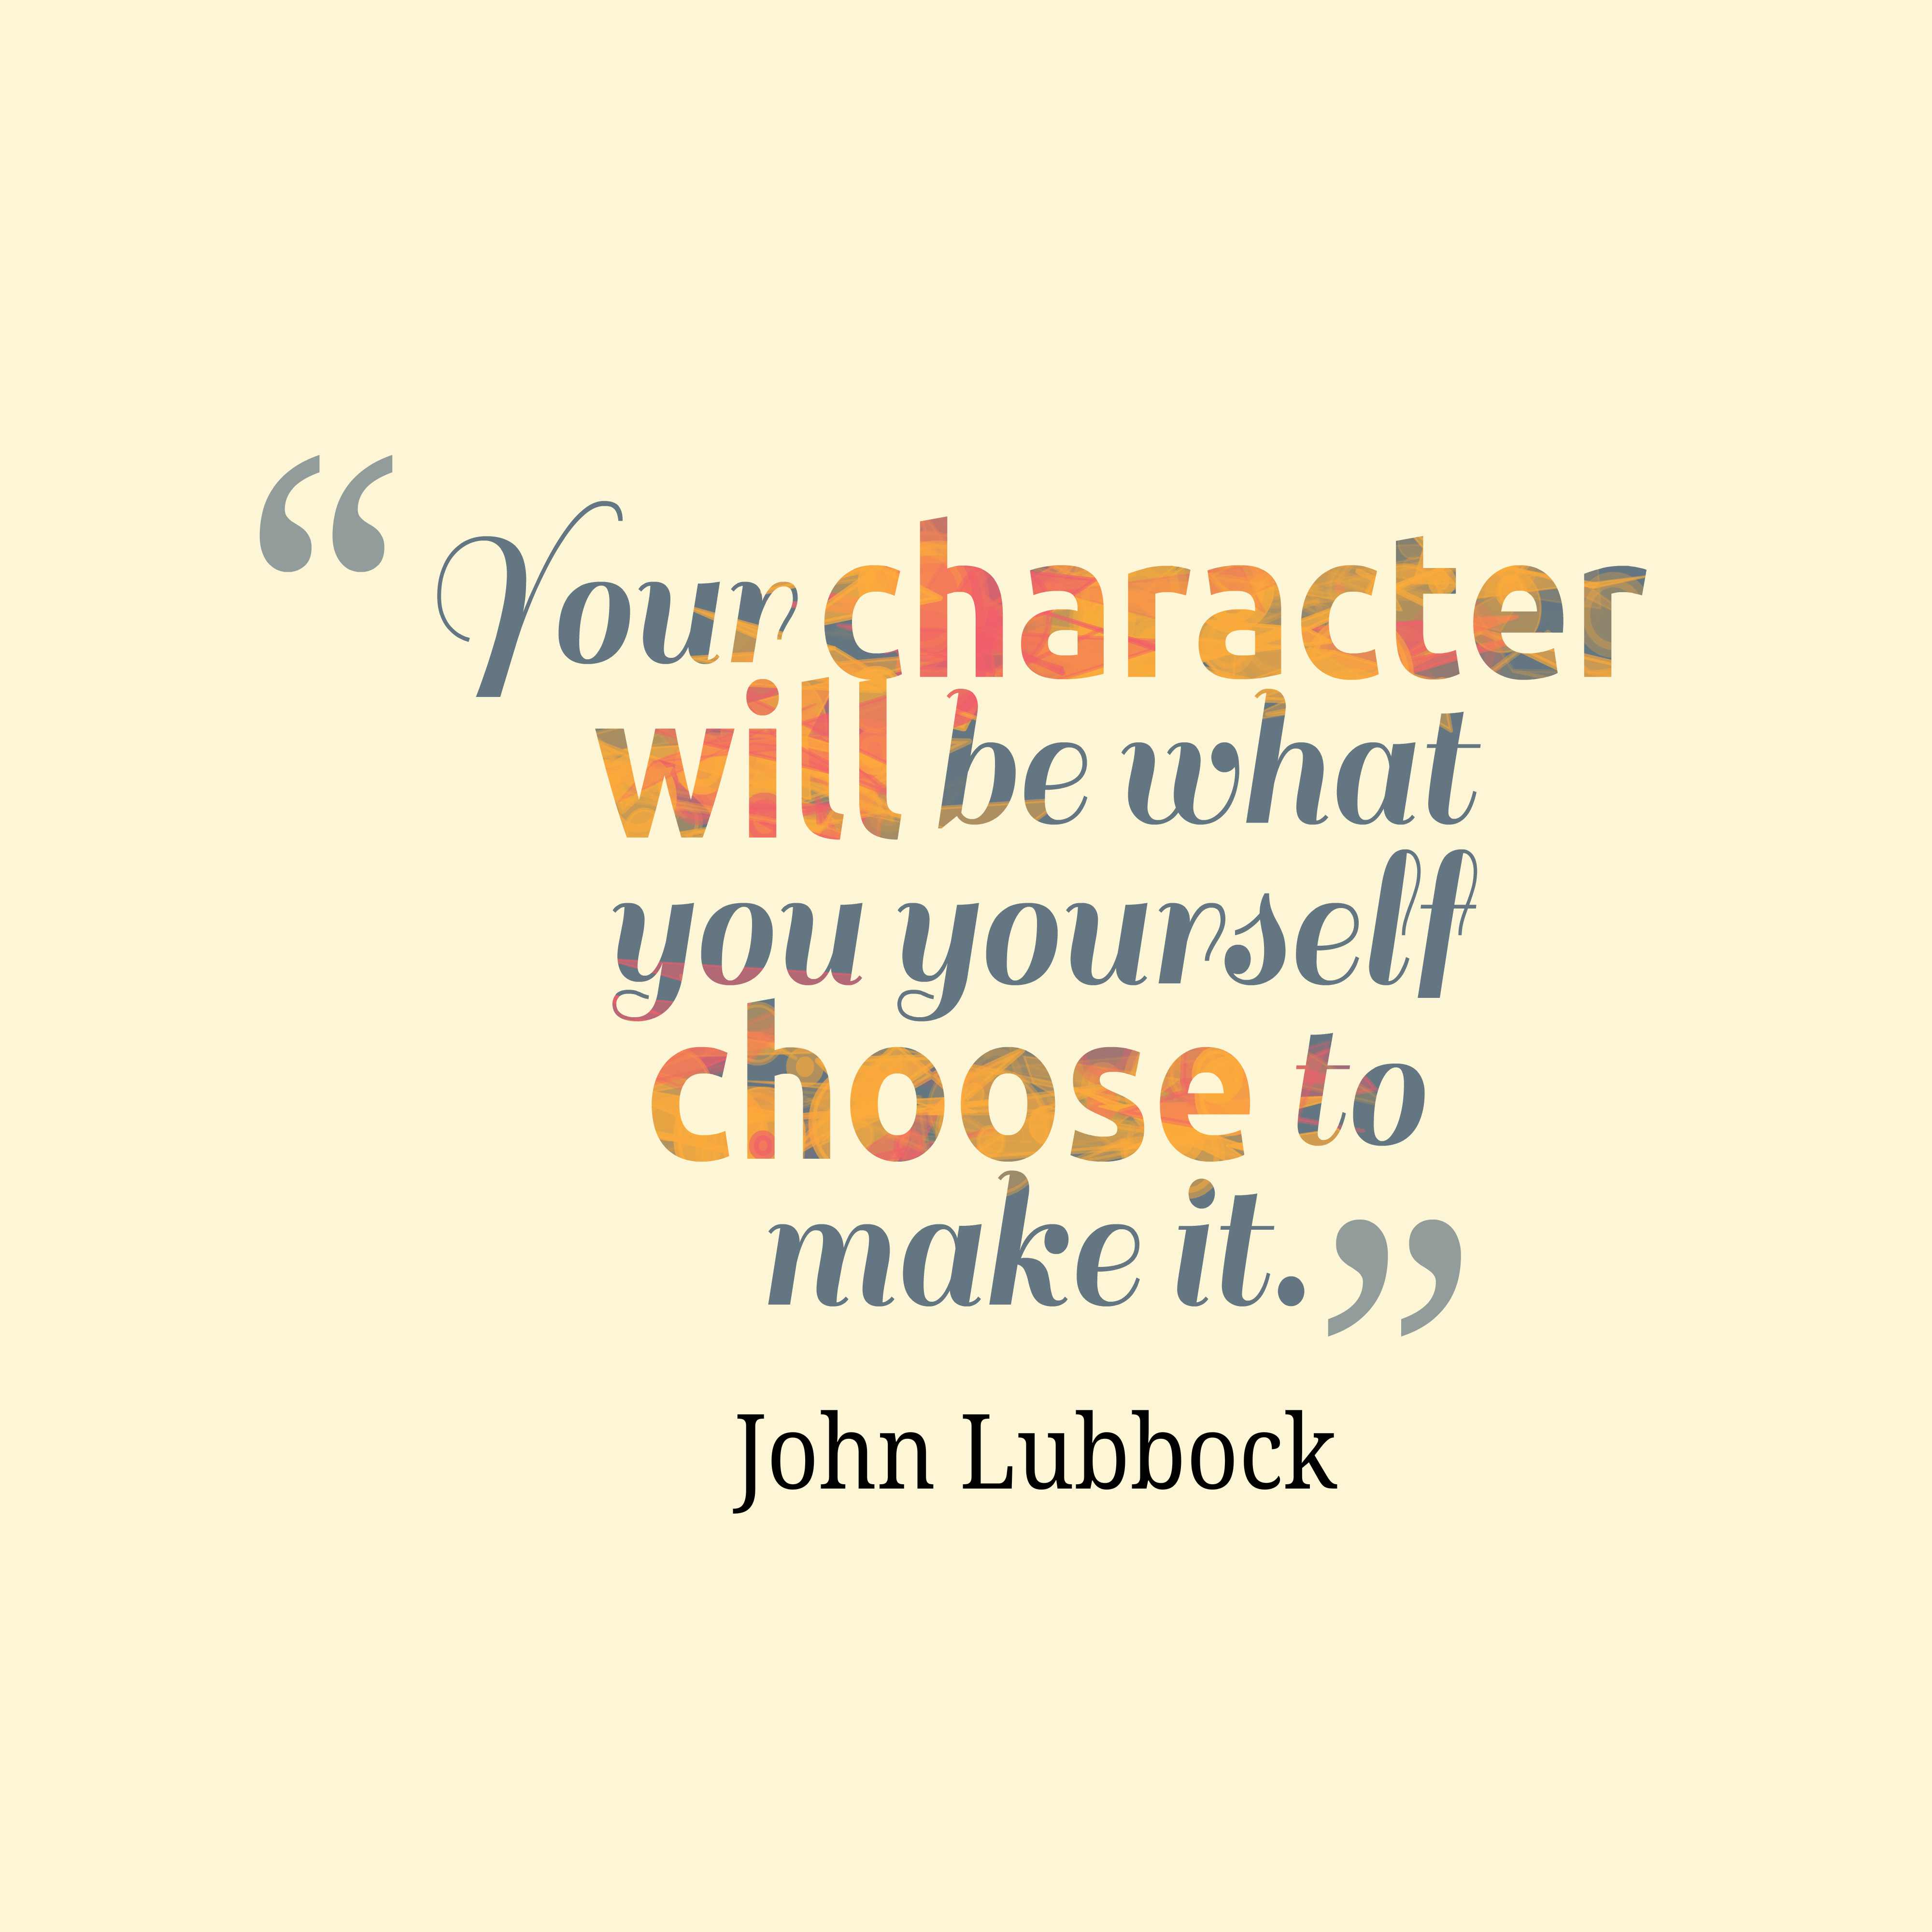 John Lubbock Quote About Character